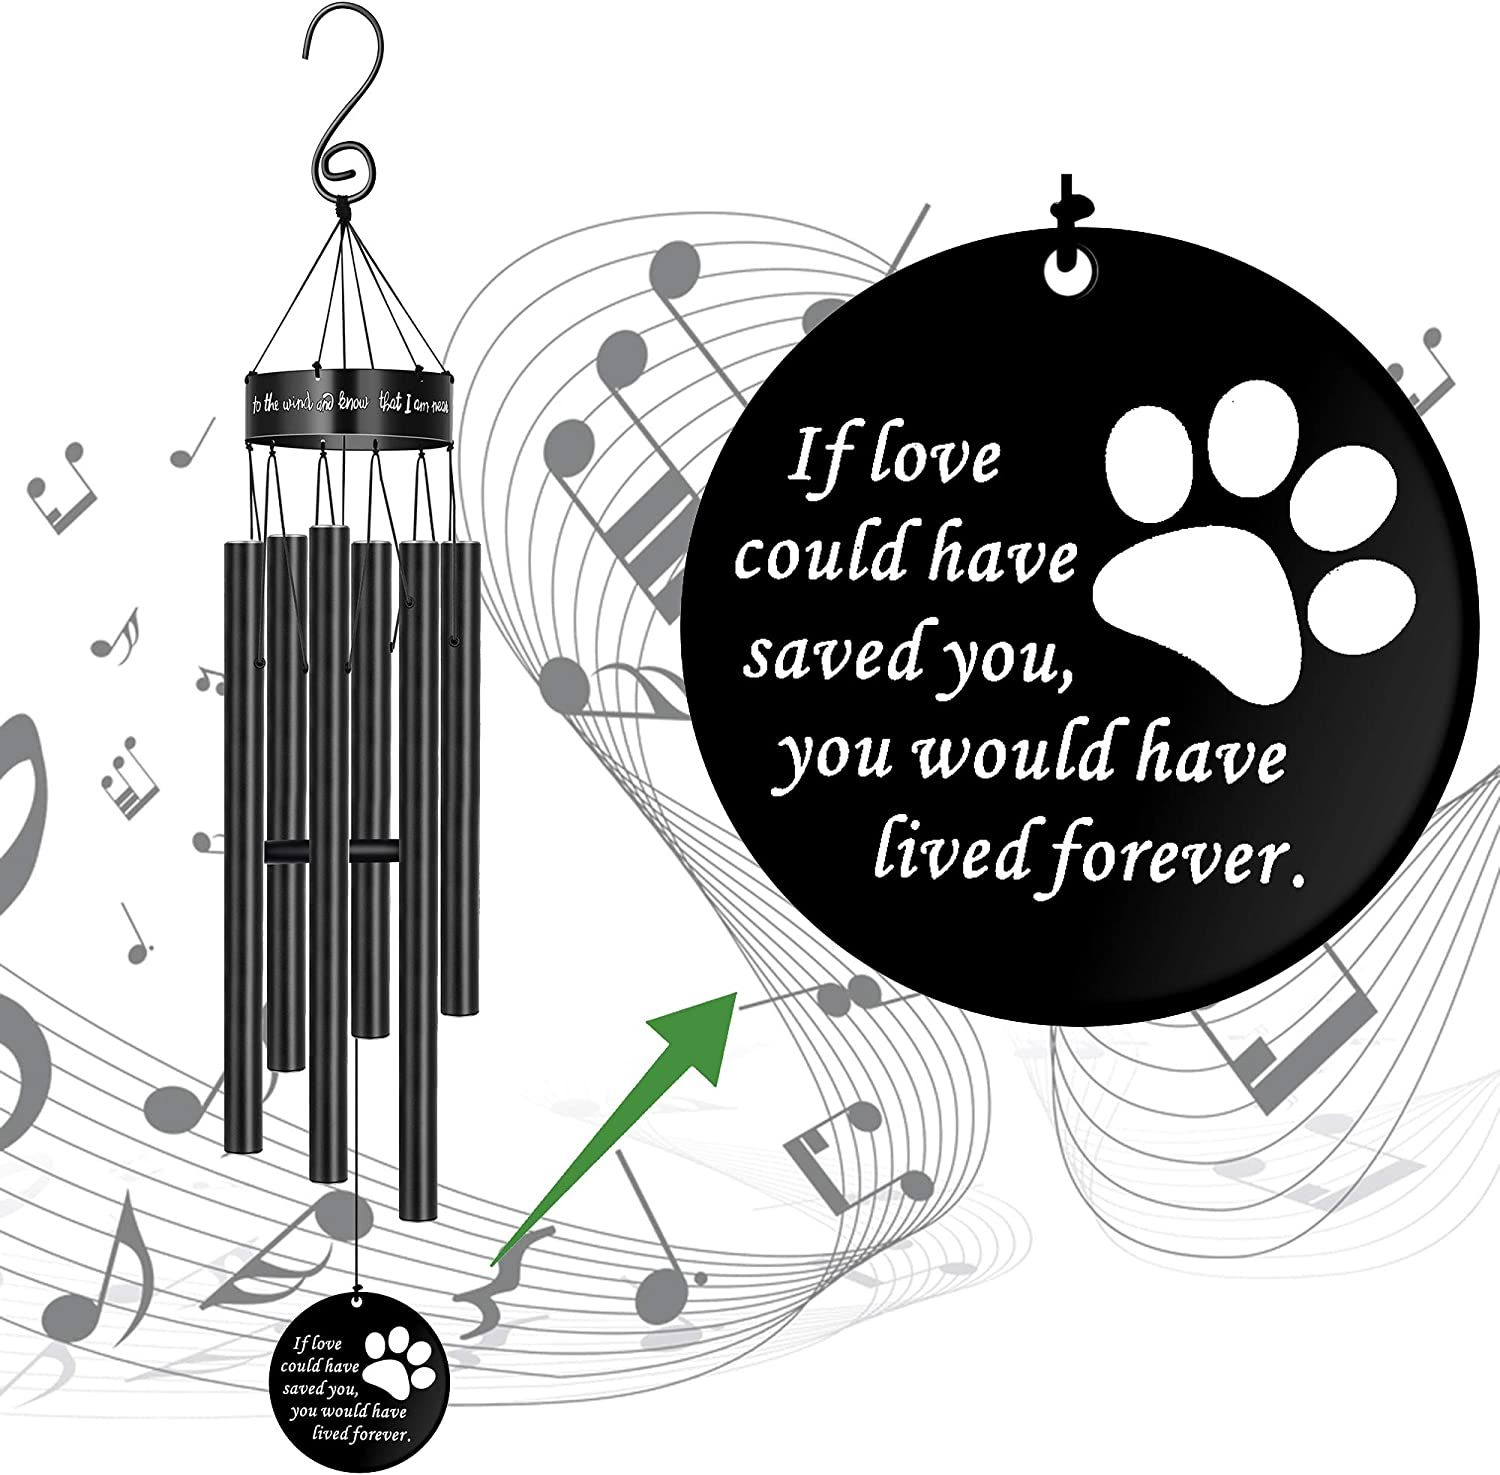 Pet Memorial Wind Chimes for Loss of Dog Paw Print Sympathy Gift for Friend Large Deep Tone Windchimes Dog Rememberance Déco Outside Outdoor Indoor Garden Yard Porch Patio If Love Could Have Saved You